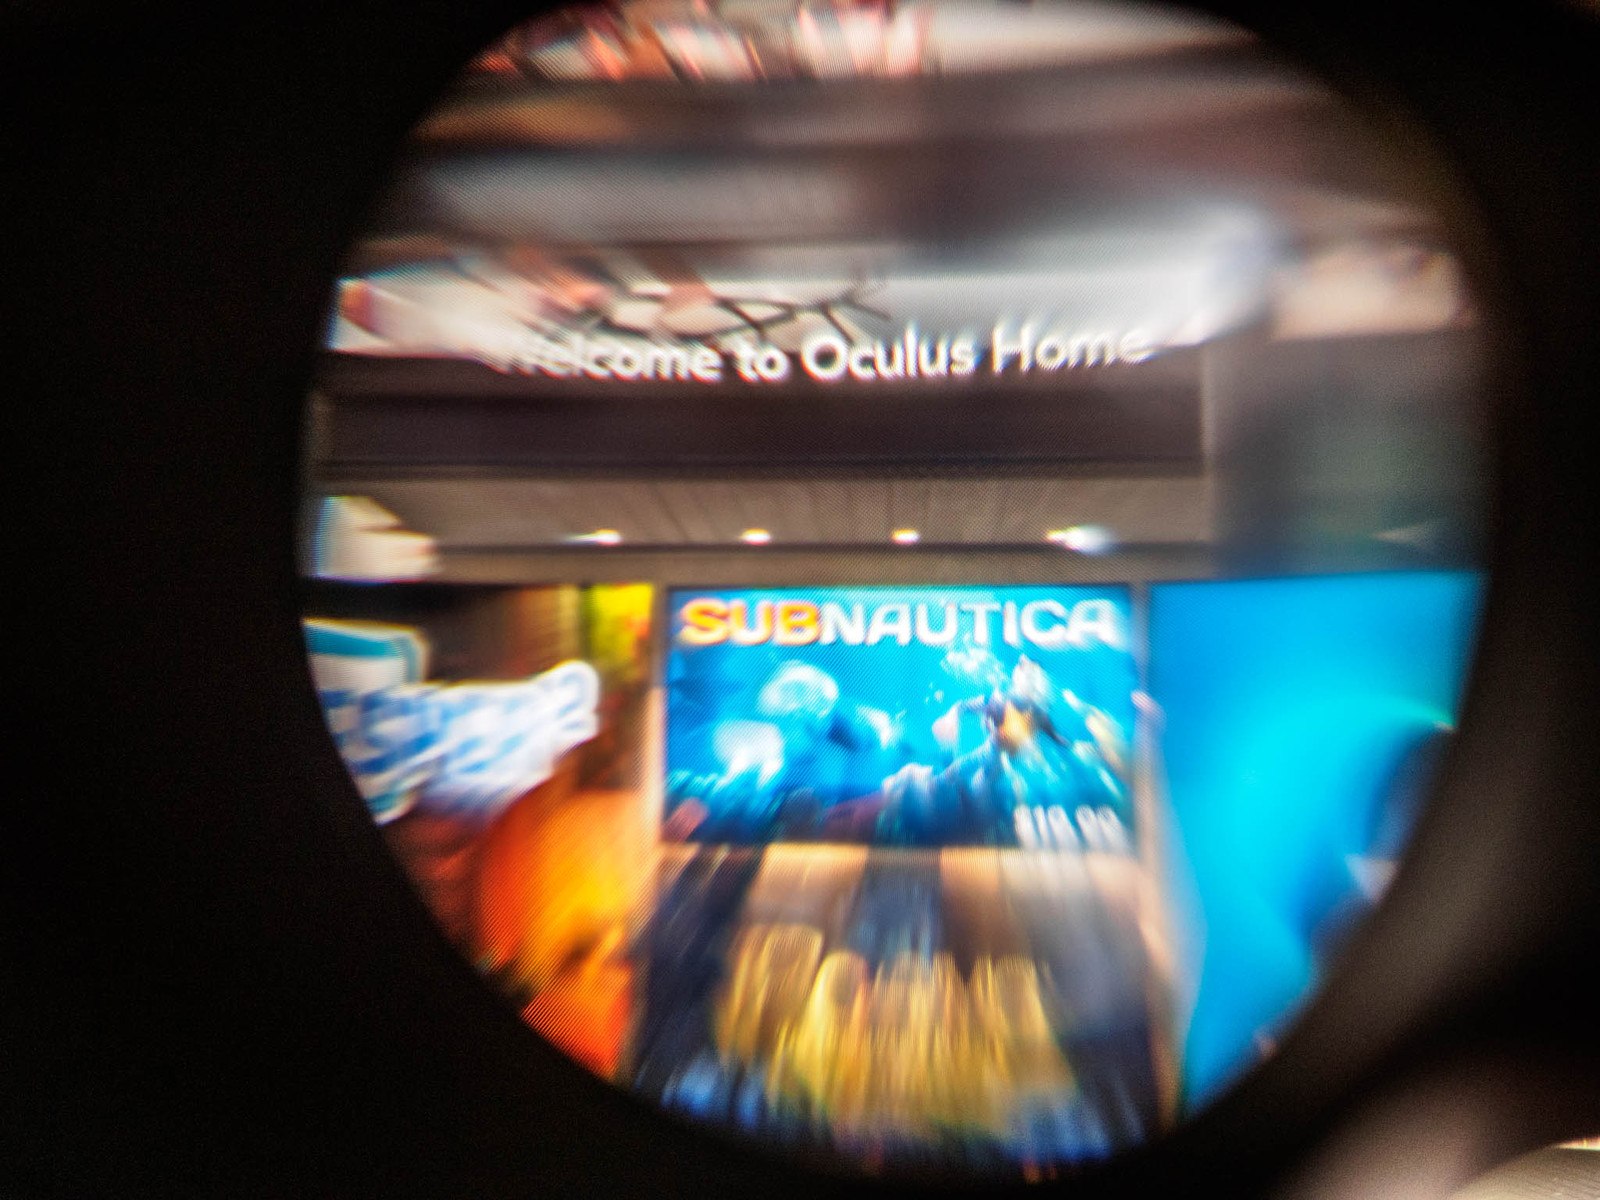 How to fix not being able to select anything in Oculus Home